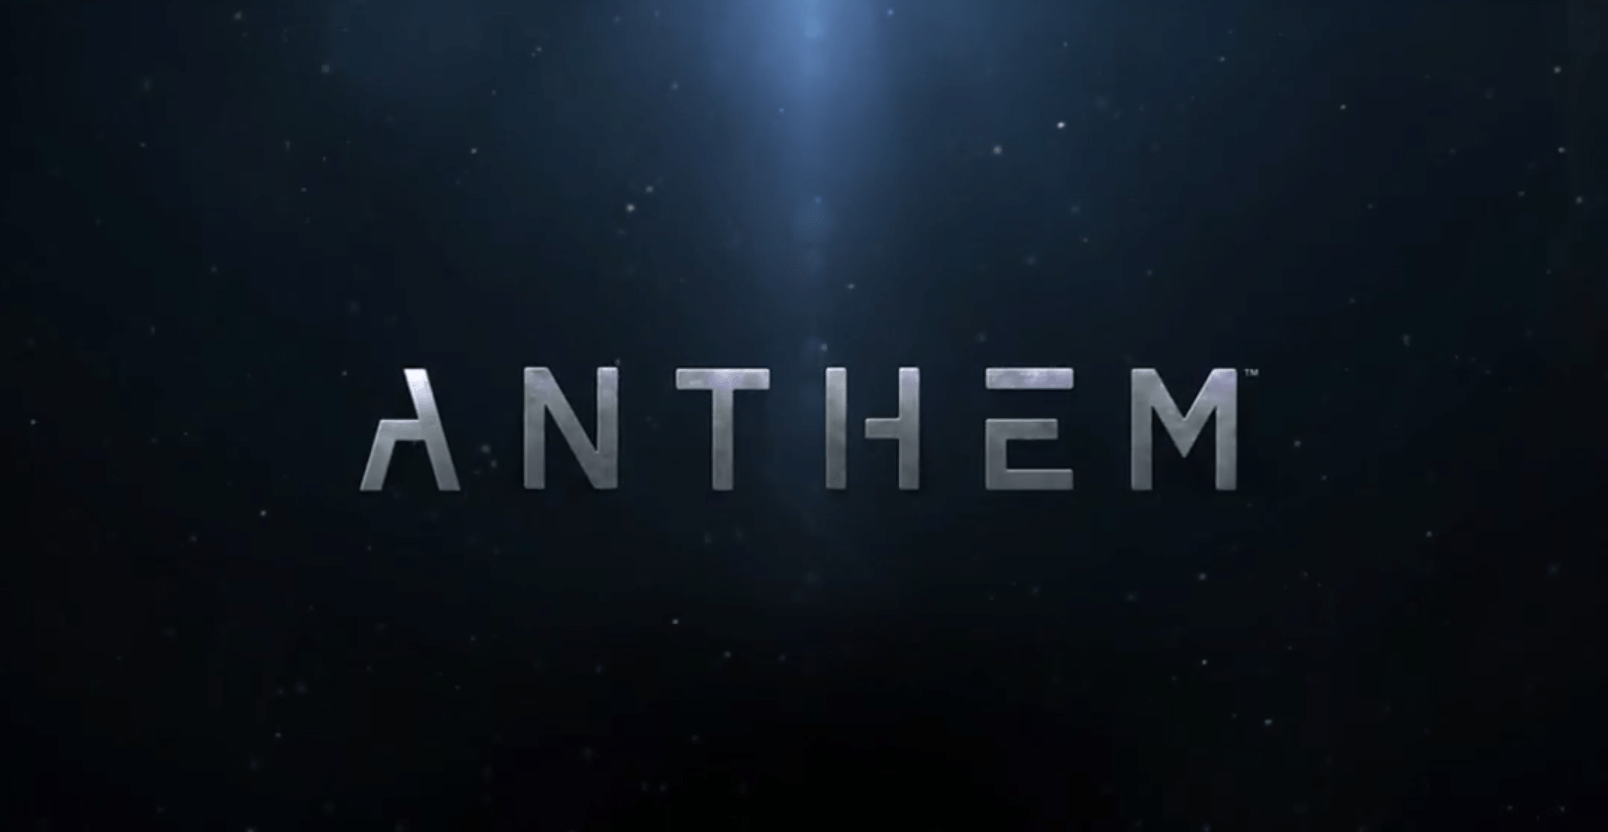 Anthem - Der erste Gameplay-Trailer